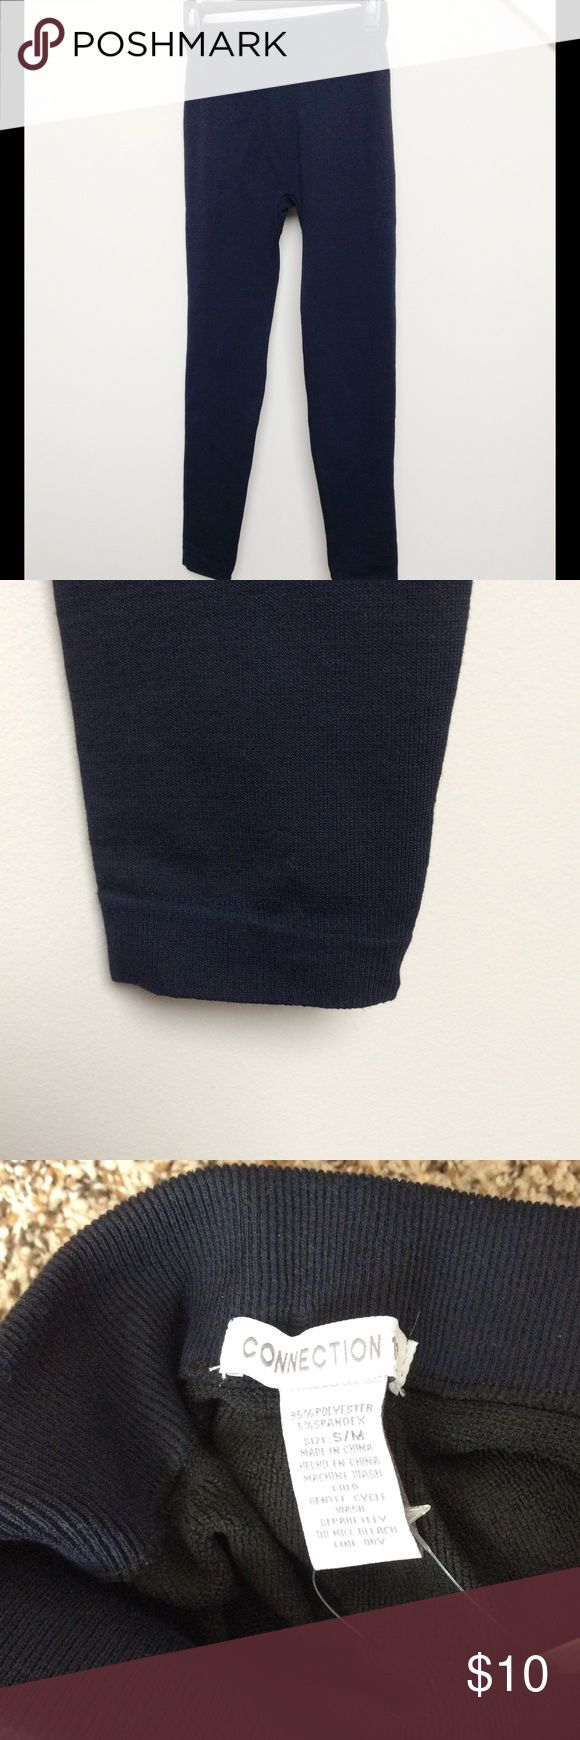 """Black NWT Leggings, Size S Thick black leggings that are NWT.  Size on tag says """"S/M"""" but they fit more like a small.  Inseam is 26.5, so they may fit more like capri leggings (unless you are a shortie like me!).  Material is thicker (kind of feels like sweatpants on the outside). Pants Leggings"""